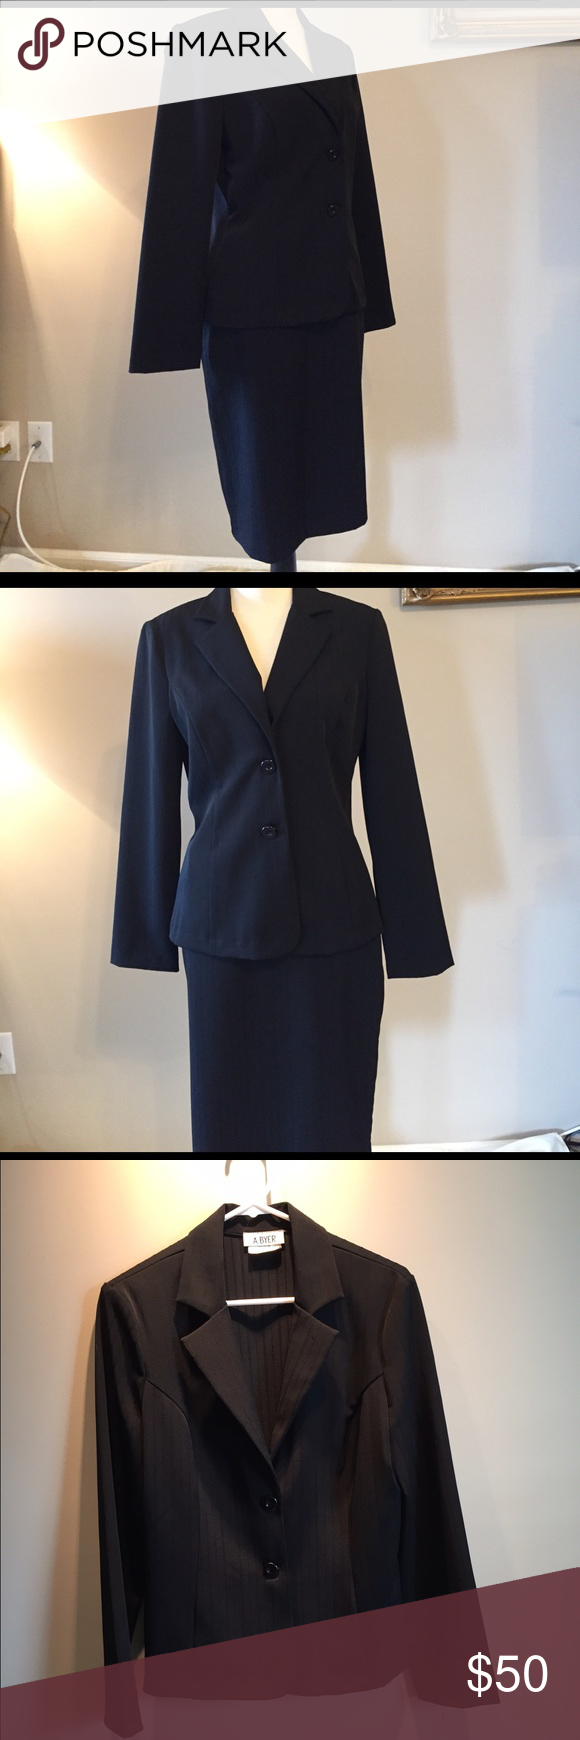 Euc a buyer piece black business suit sz large d business